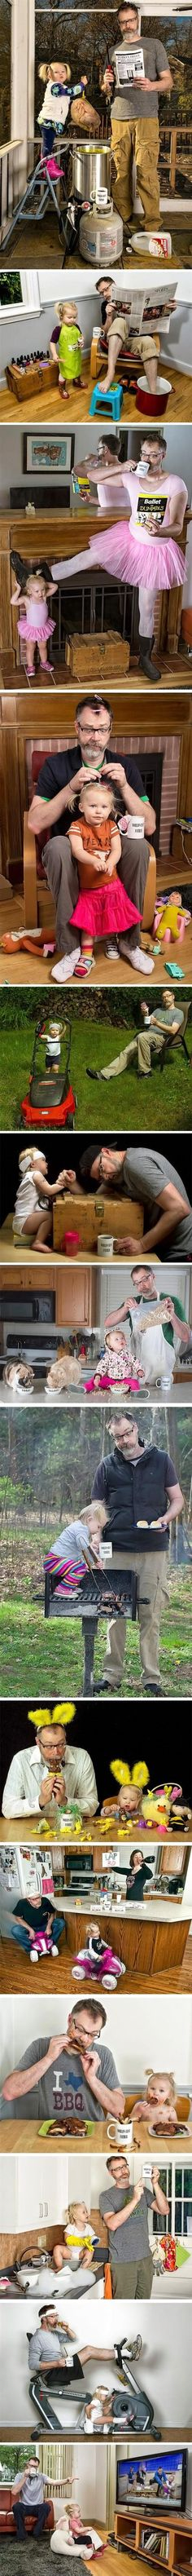 Best Dad Ever?